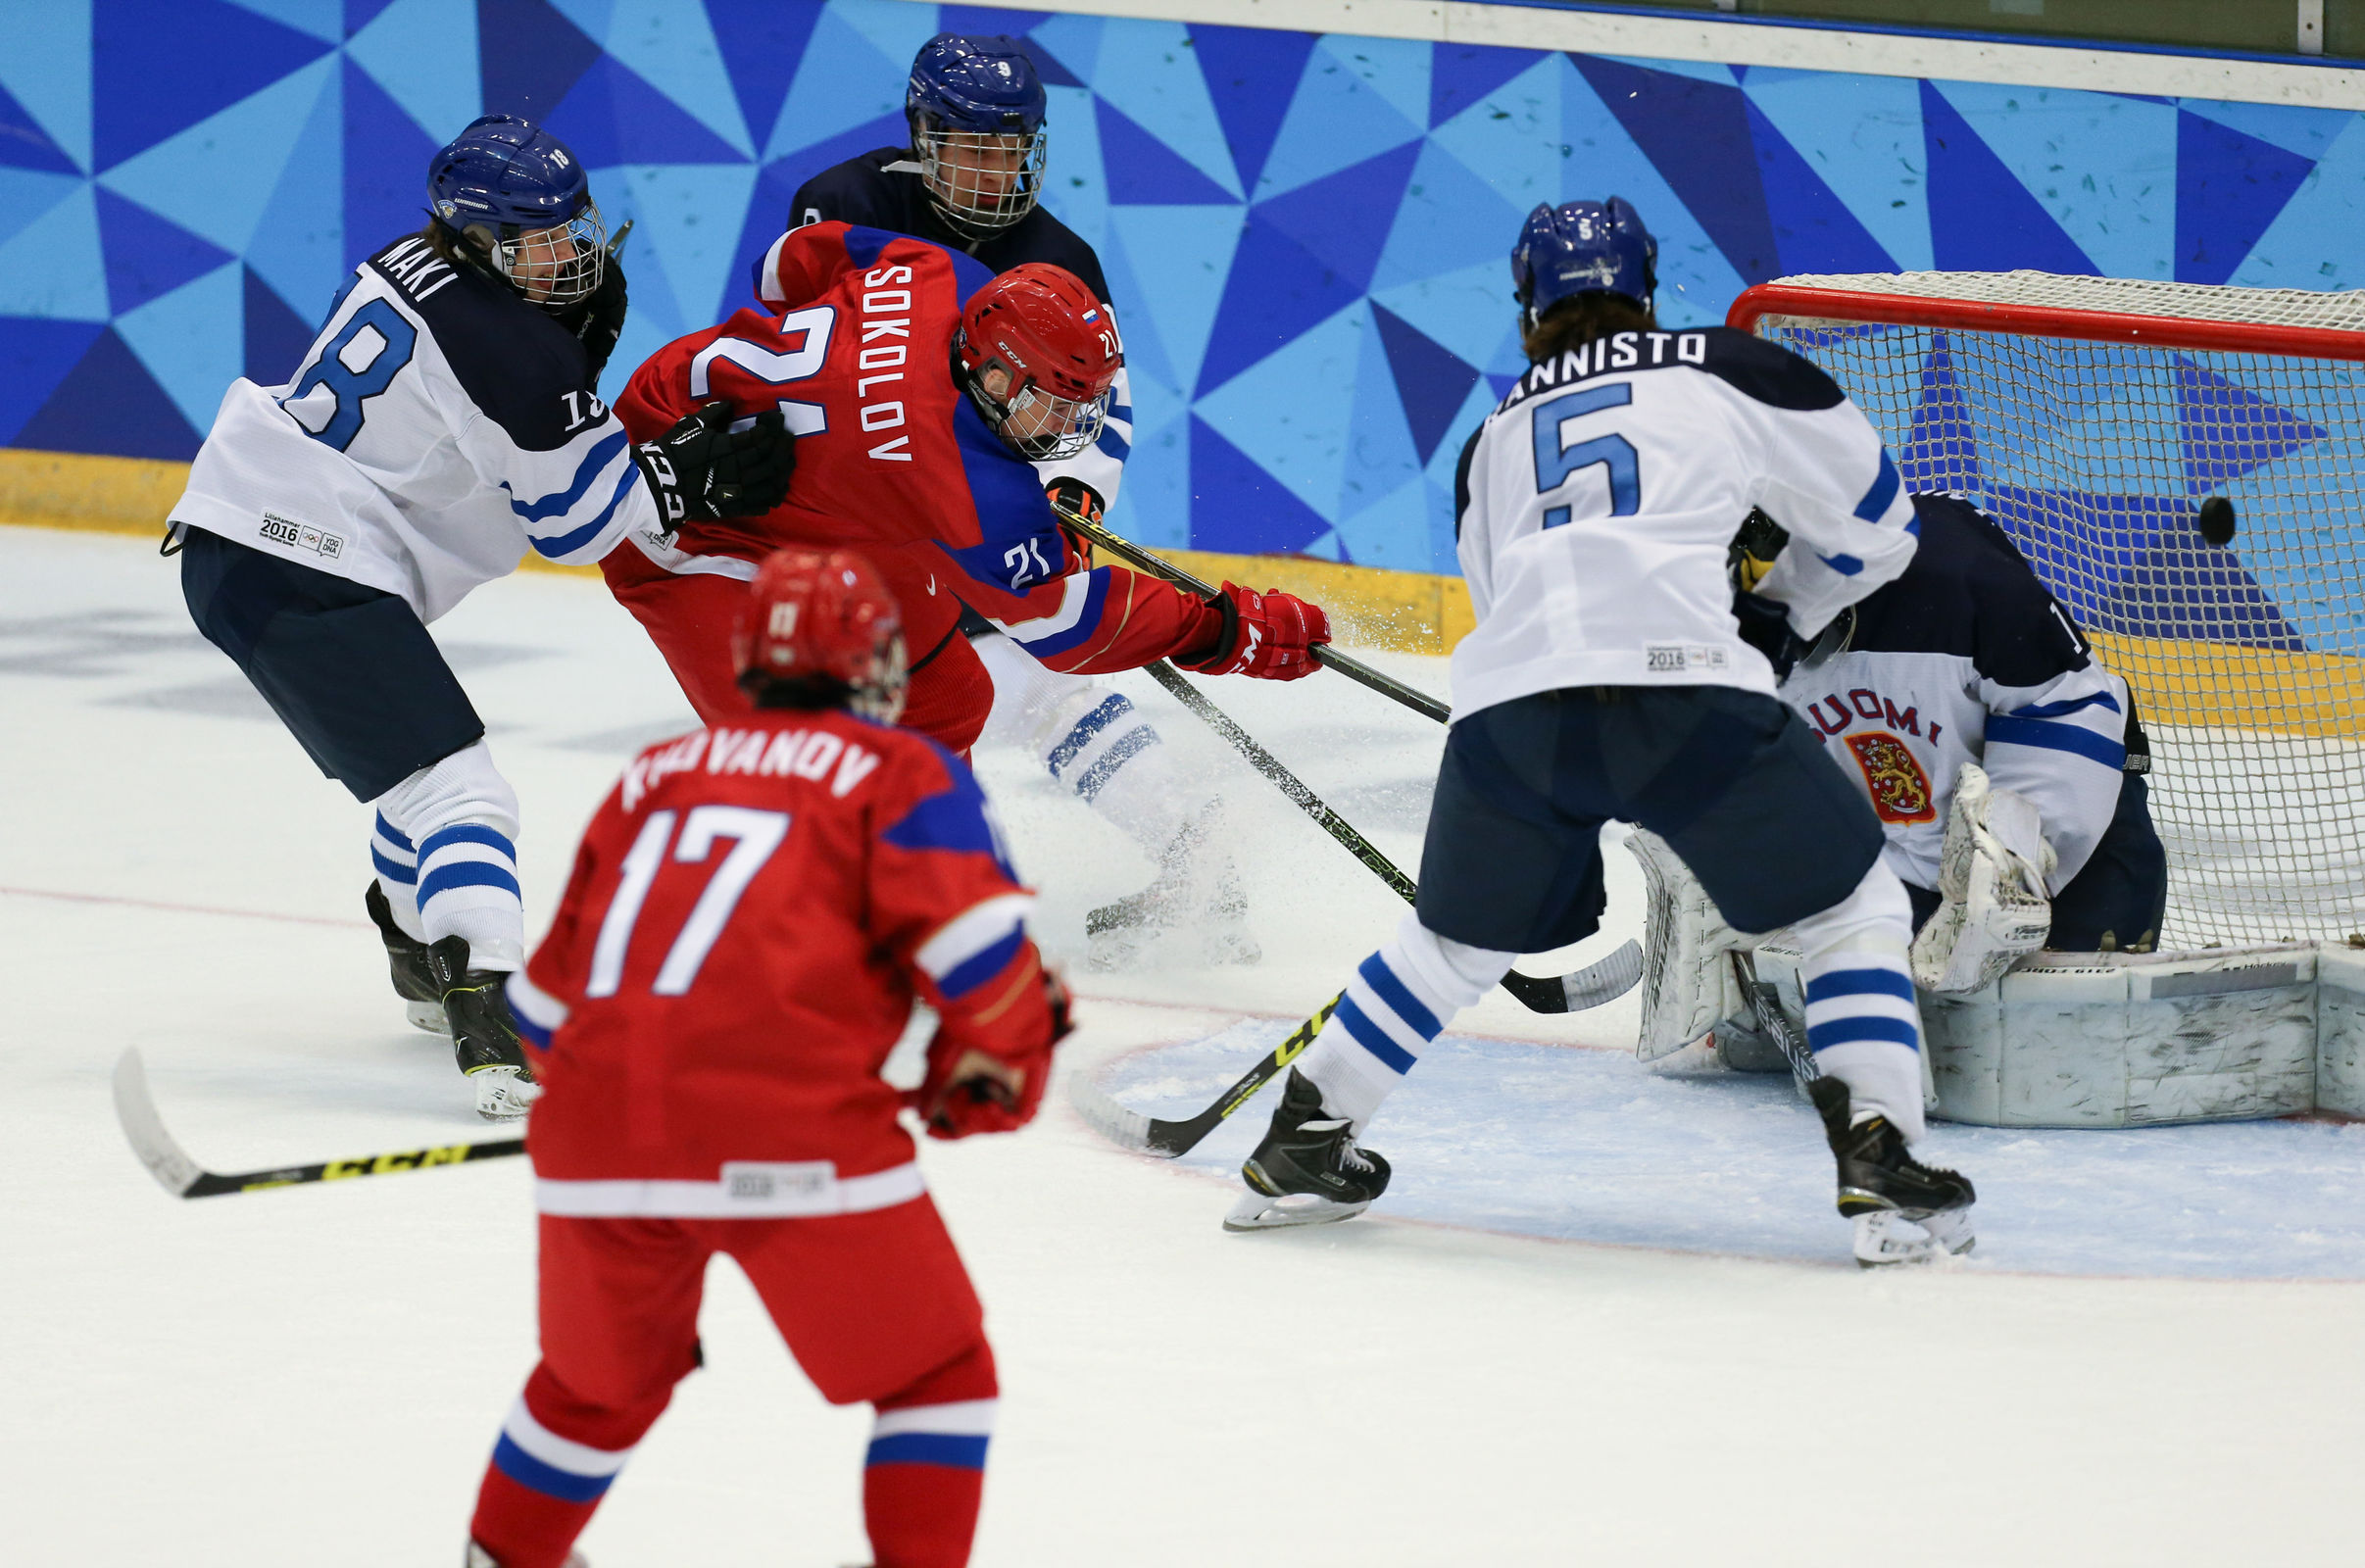 Ice Hockey Mens' Bronze Medal